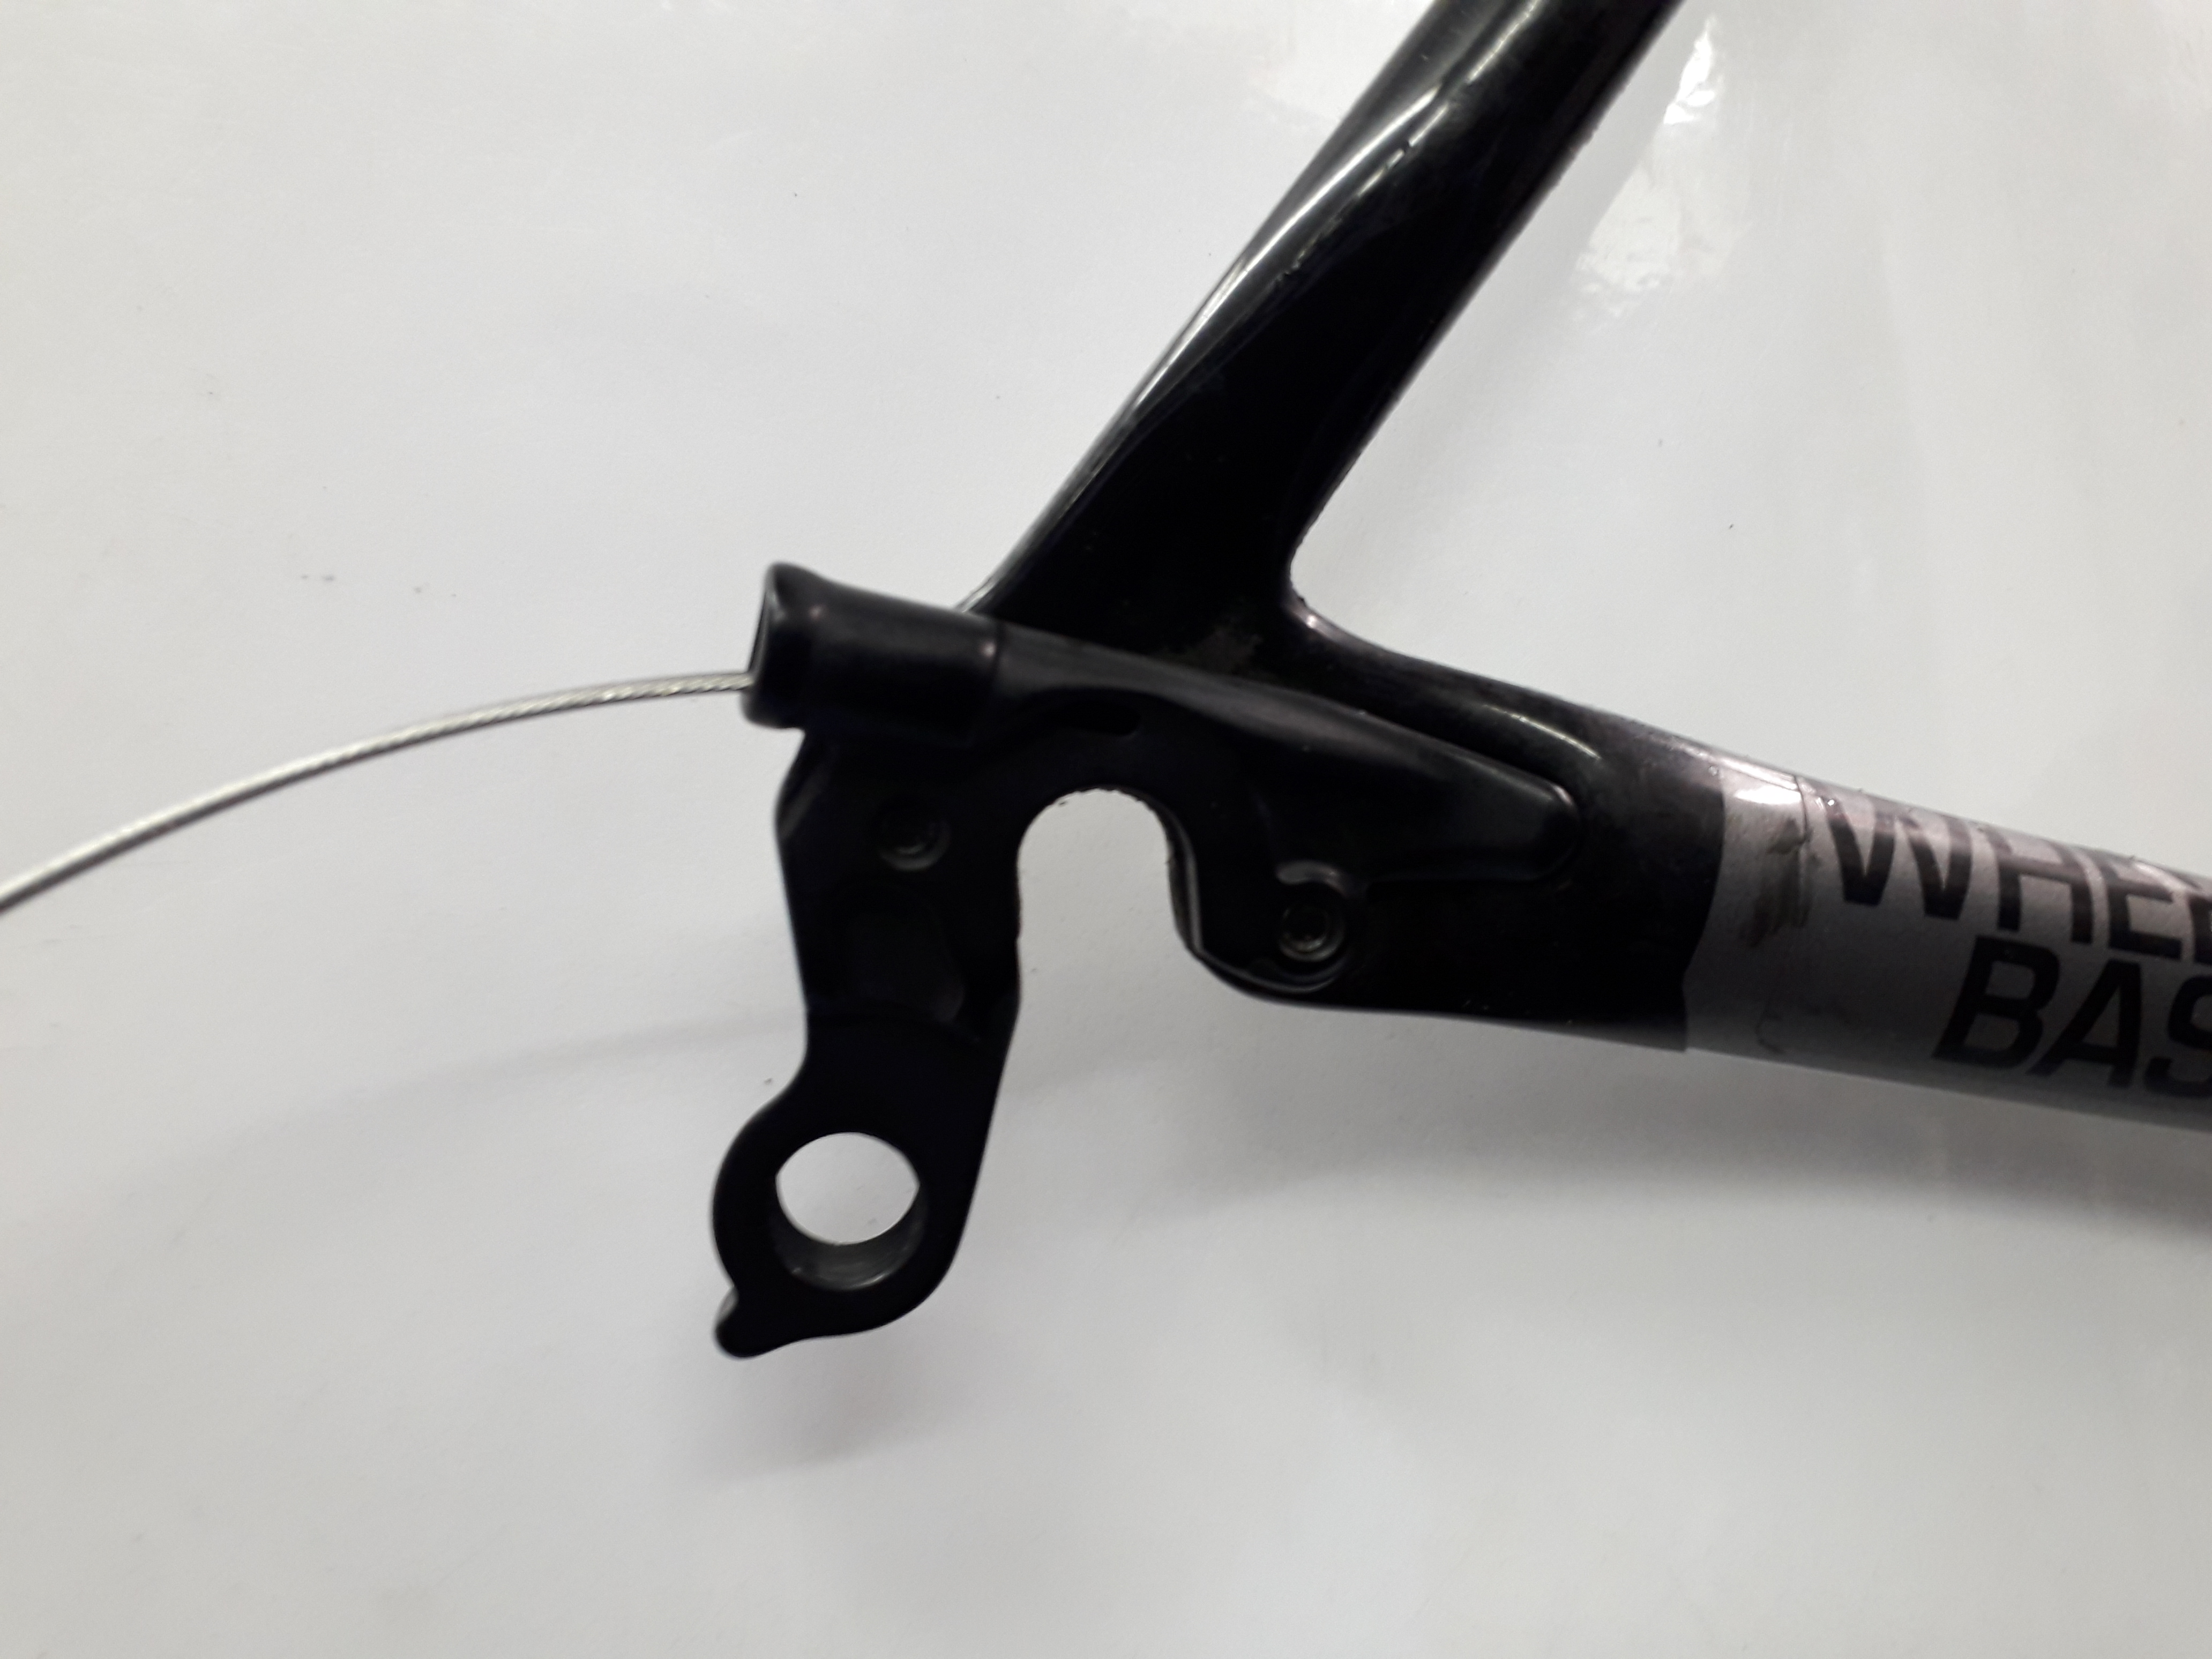 Hanger fitted with gear cable passing through it